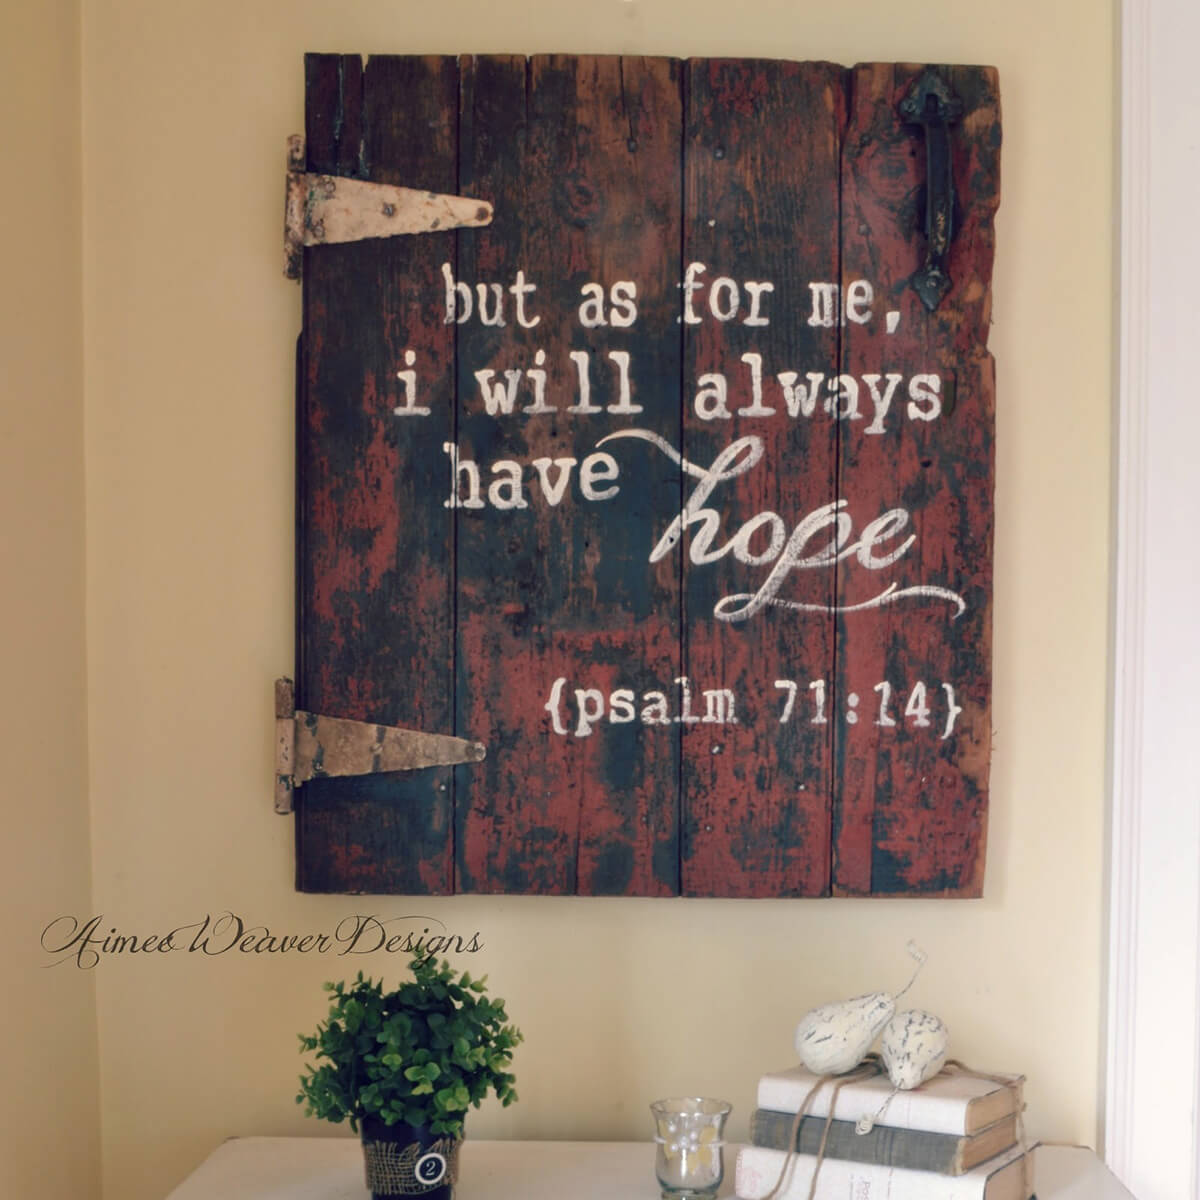 16 wall hanging barn door bible verse - Wood Sign Design Ideas